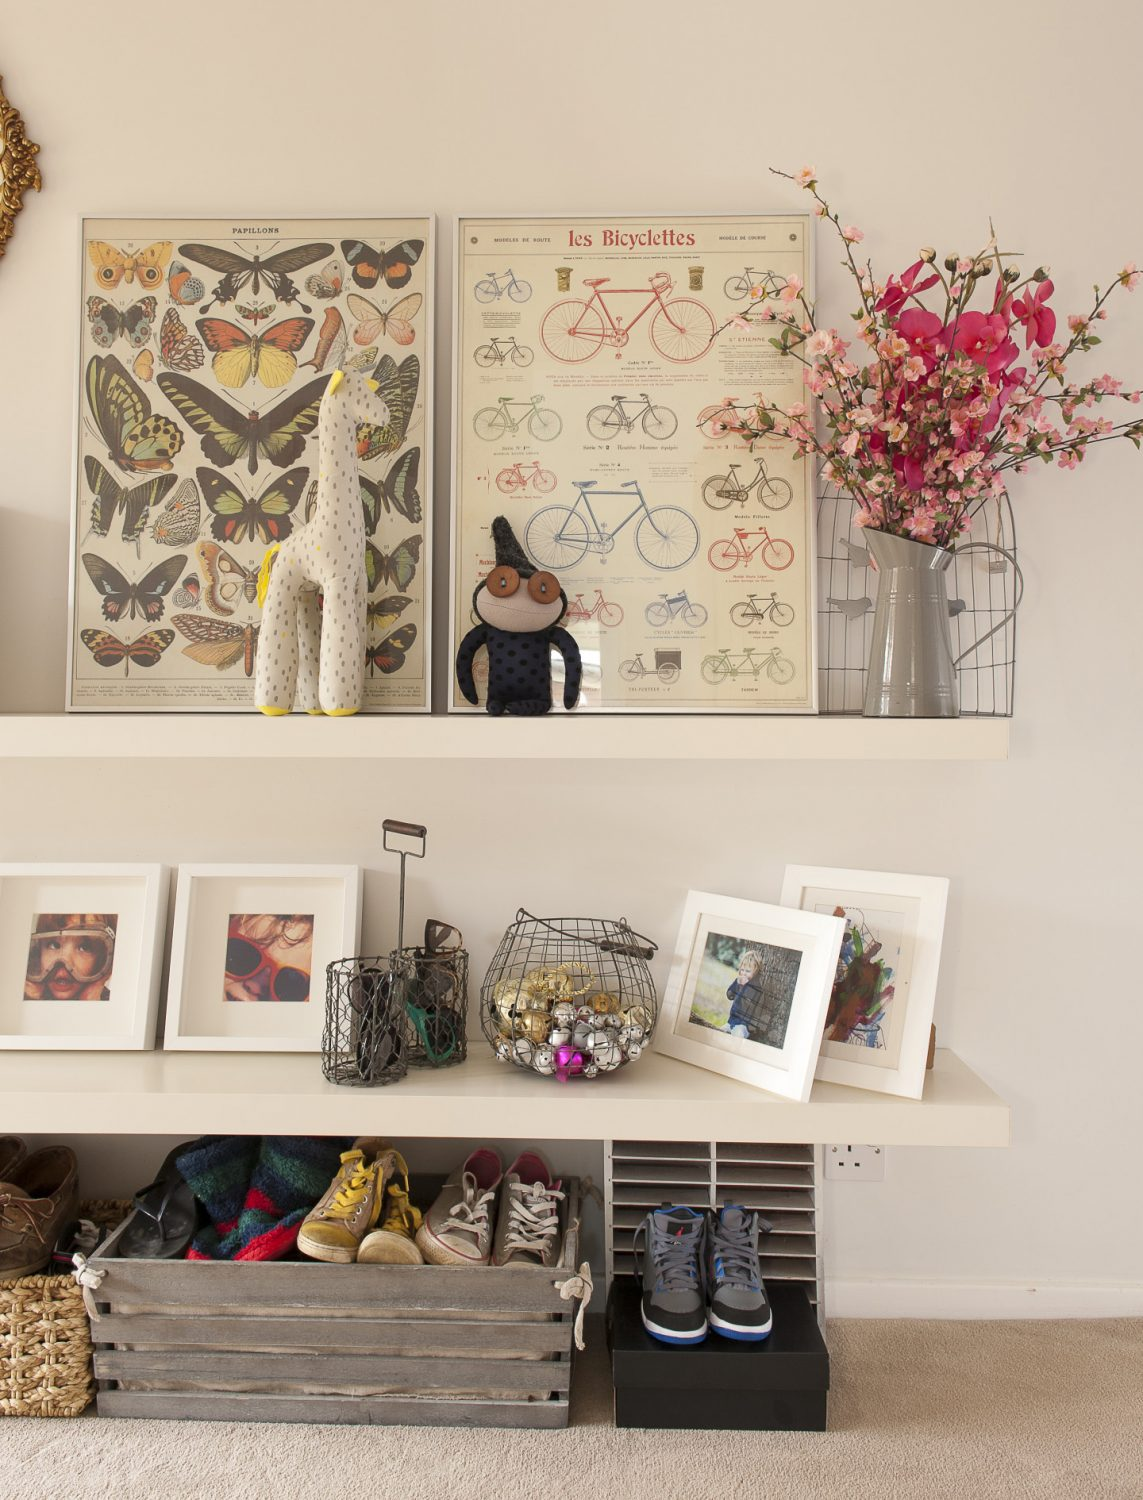 Shelves in the hallway are filled with family photographs and large framed prints, whilst underneath shoes are kept neatly ordered in a row of wooden crates and baskets